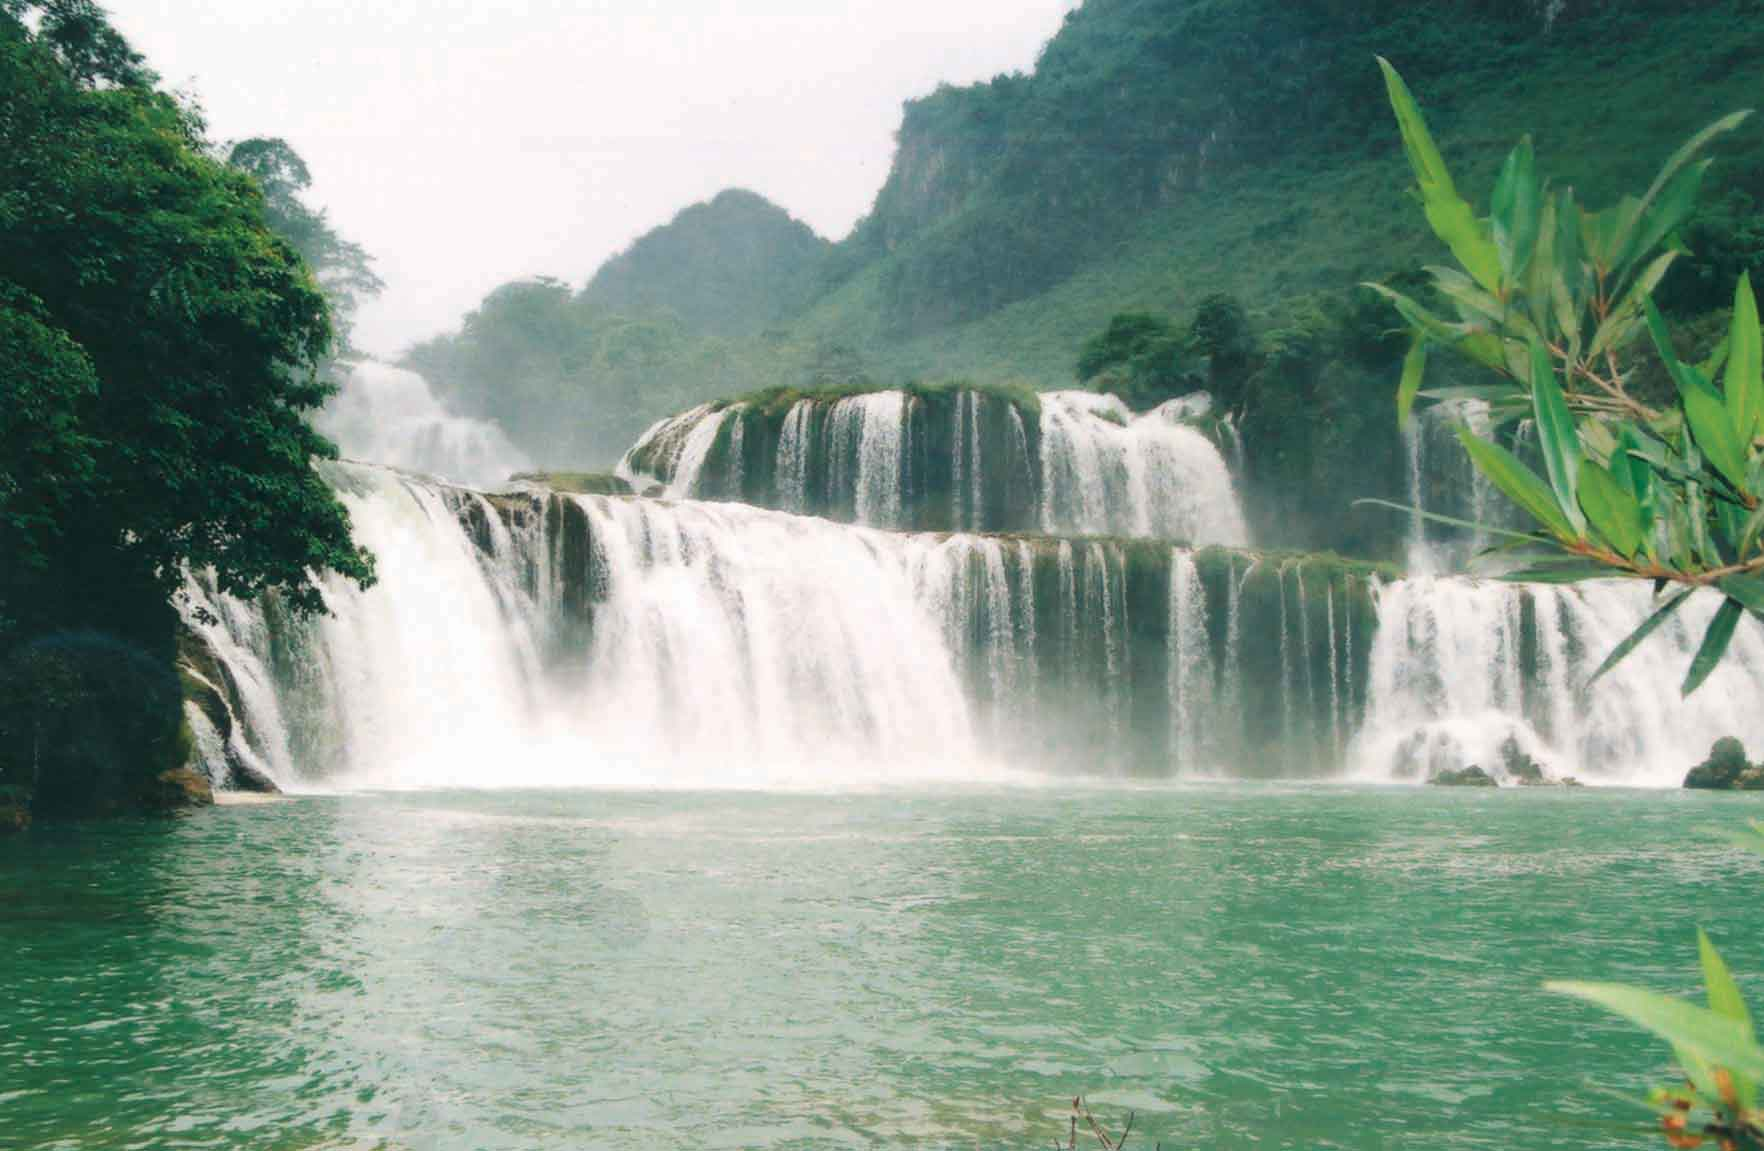 Vietnam Motorcycle Tour to Ba Be Lake, Ban Gioc Waterfall